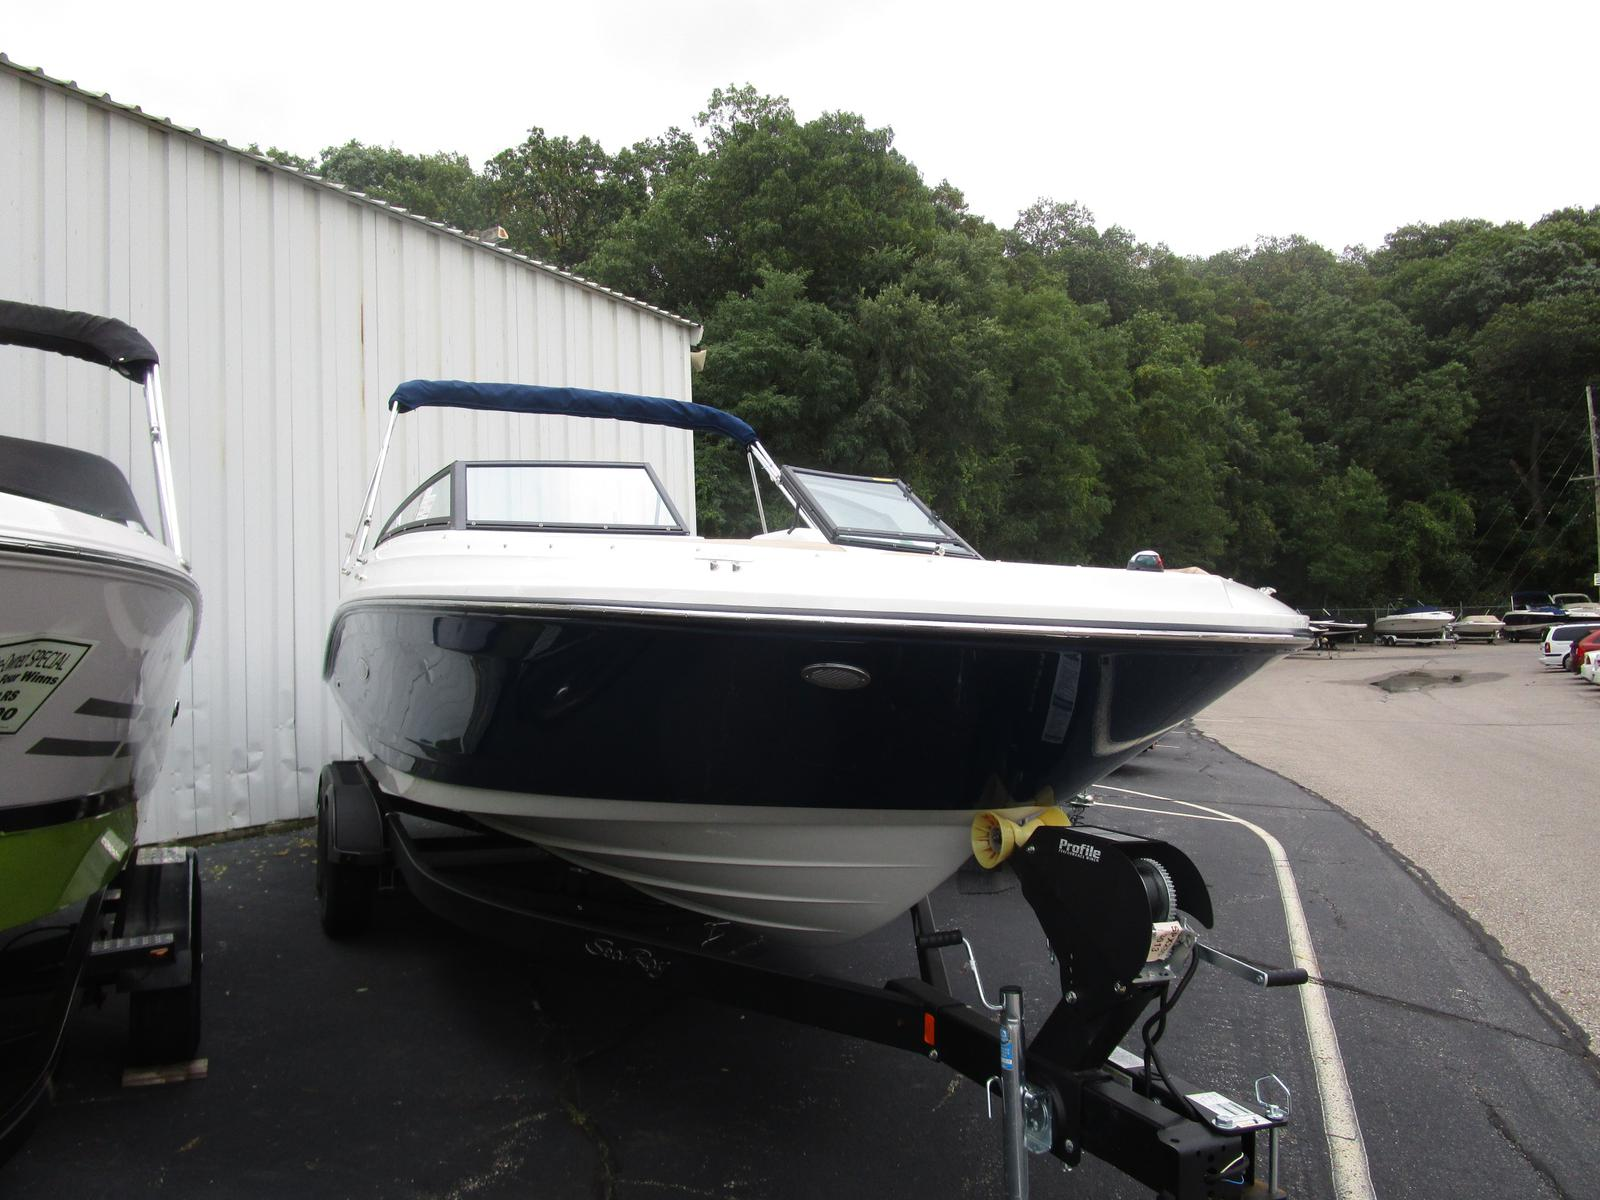 2019 Sea Ray boat for sale, model of the boat is SPX 230 & Image # 2 of 7